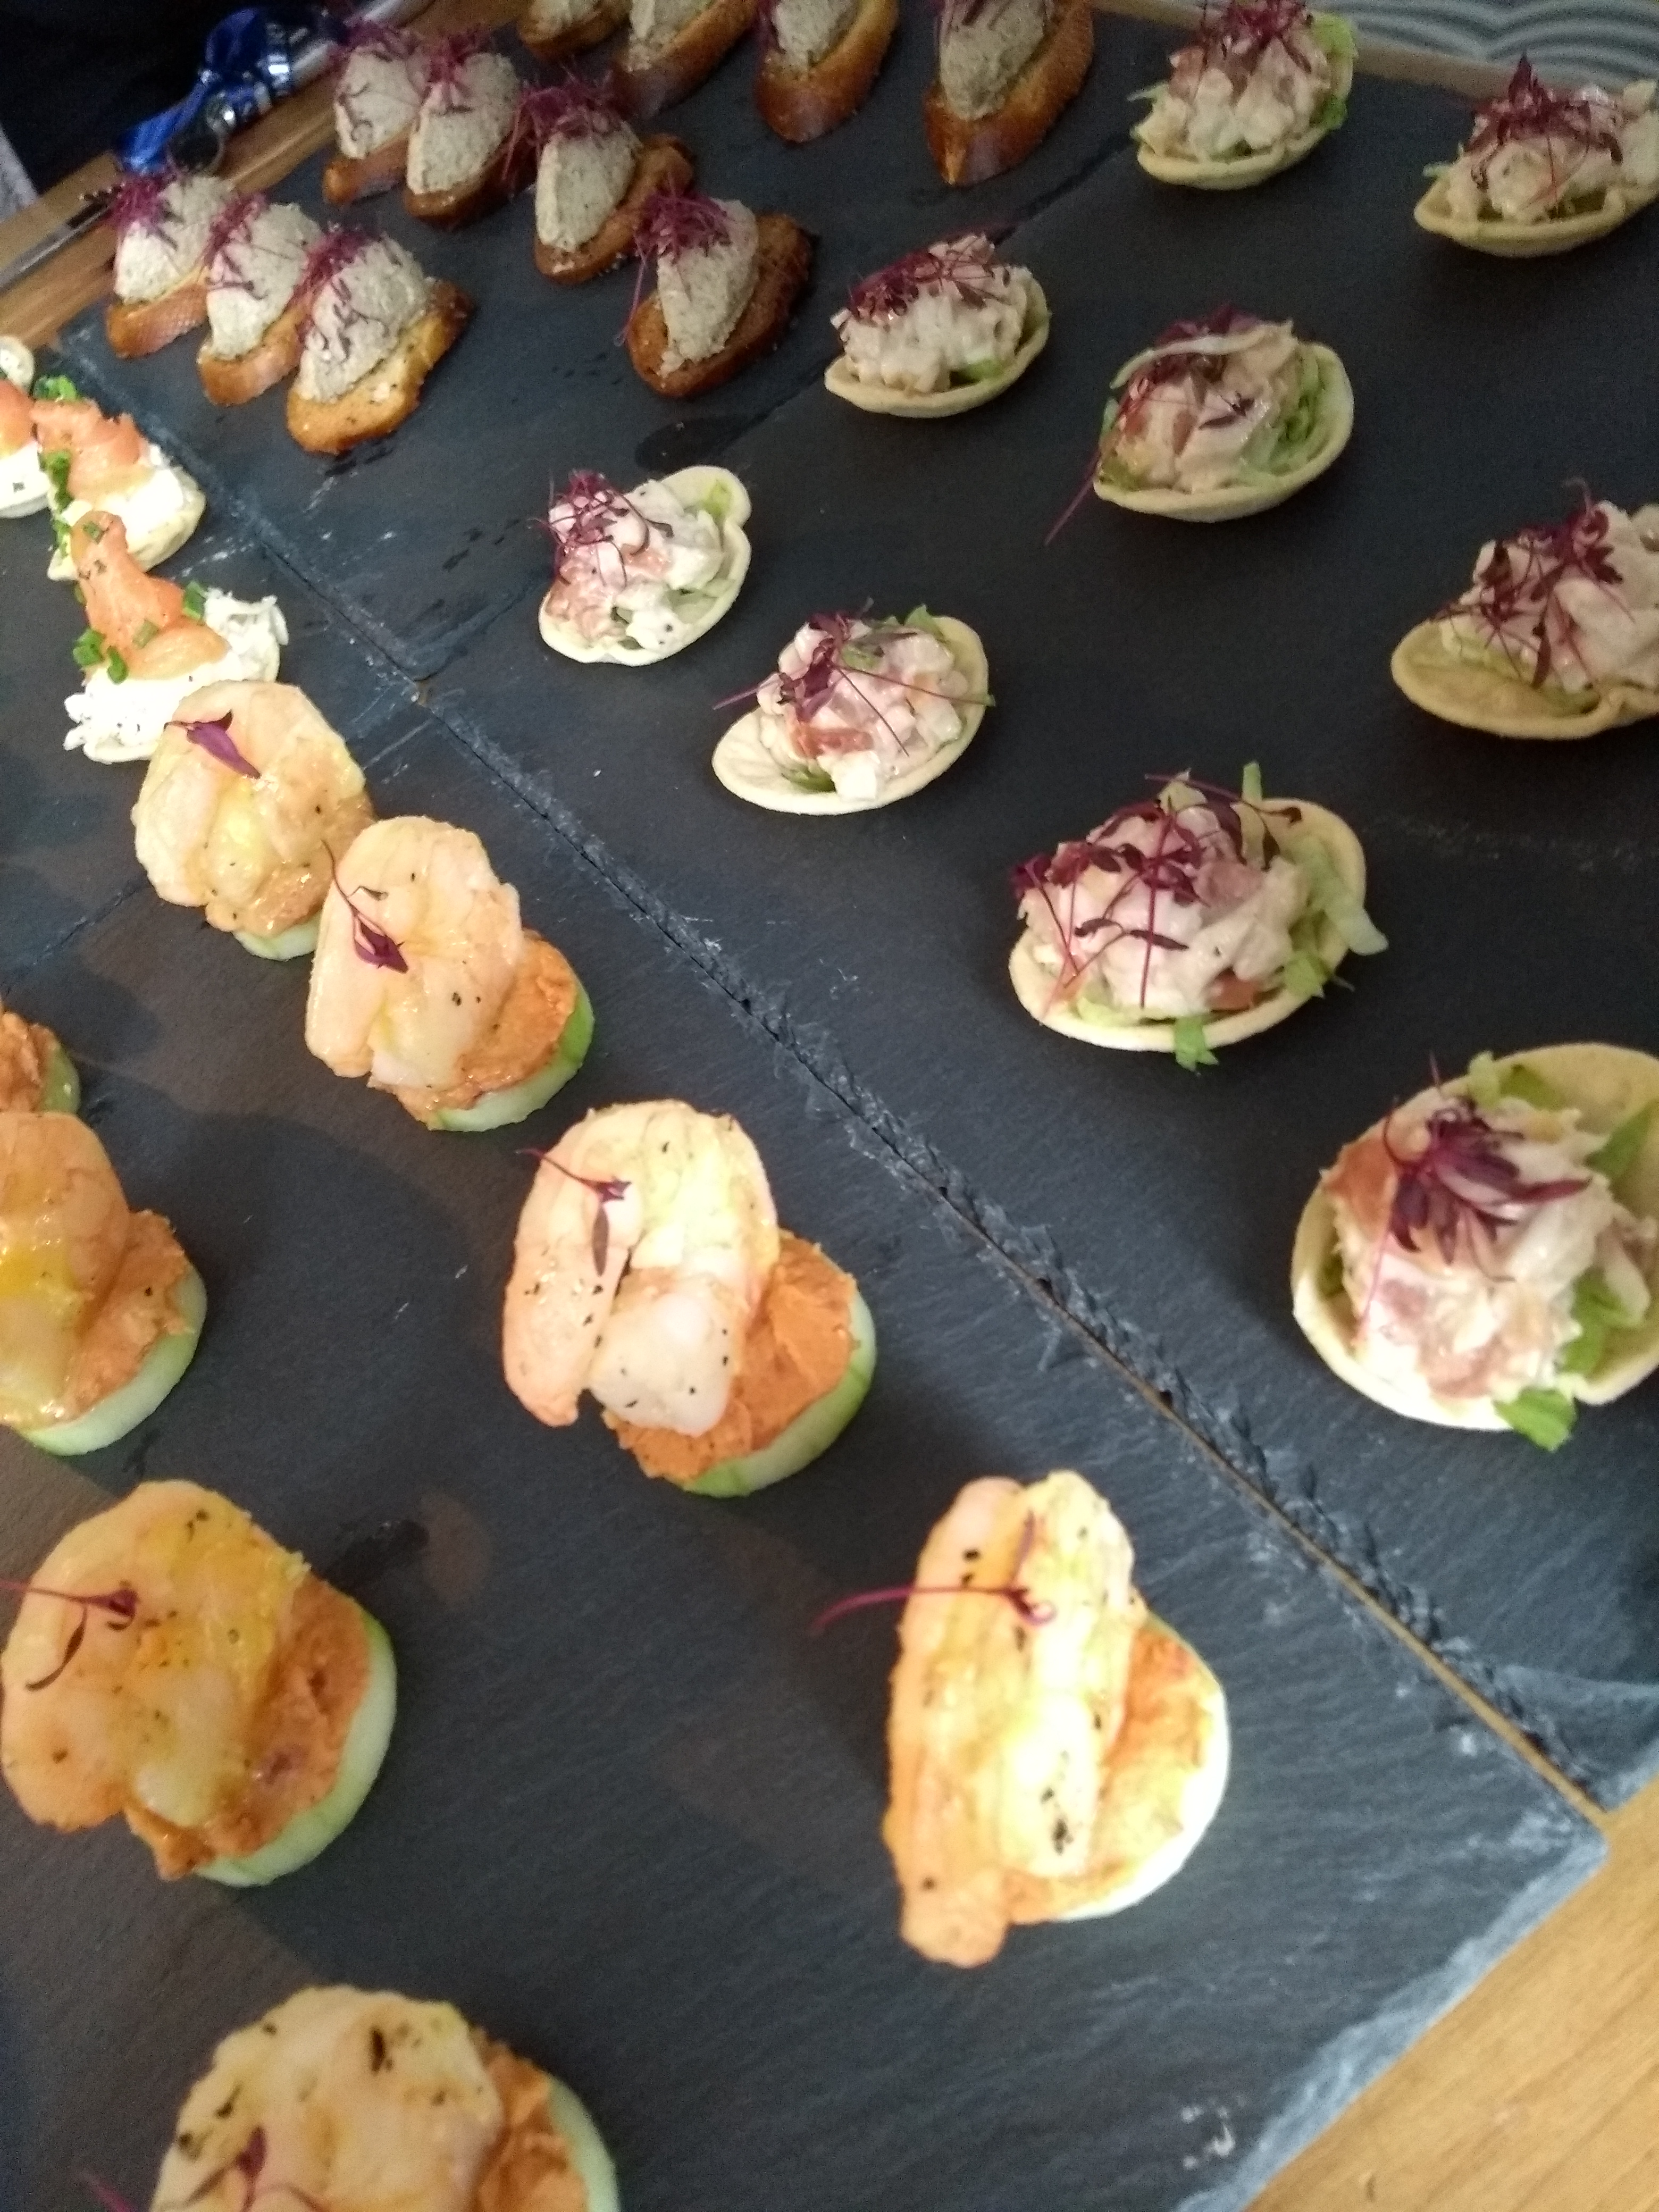 Corporate, Weddings, small or large private parties. We do it all!